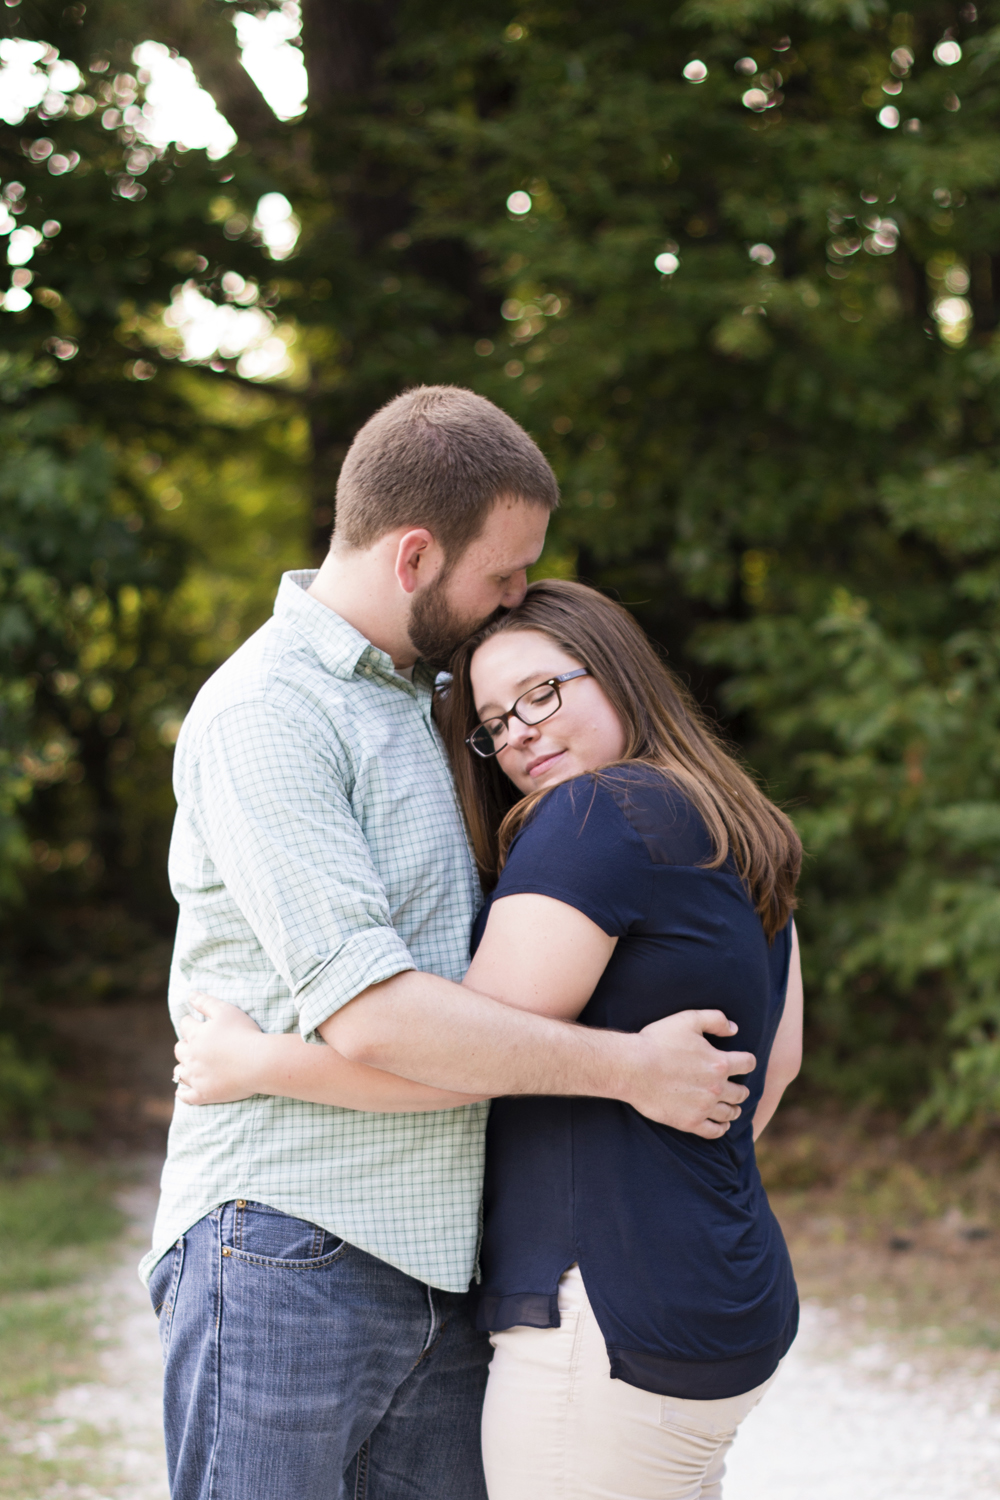 Intimate engagement pictures at Lions Bridge Park in Newport News, Virginia